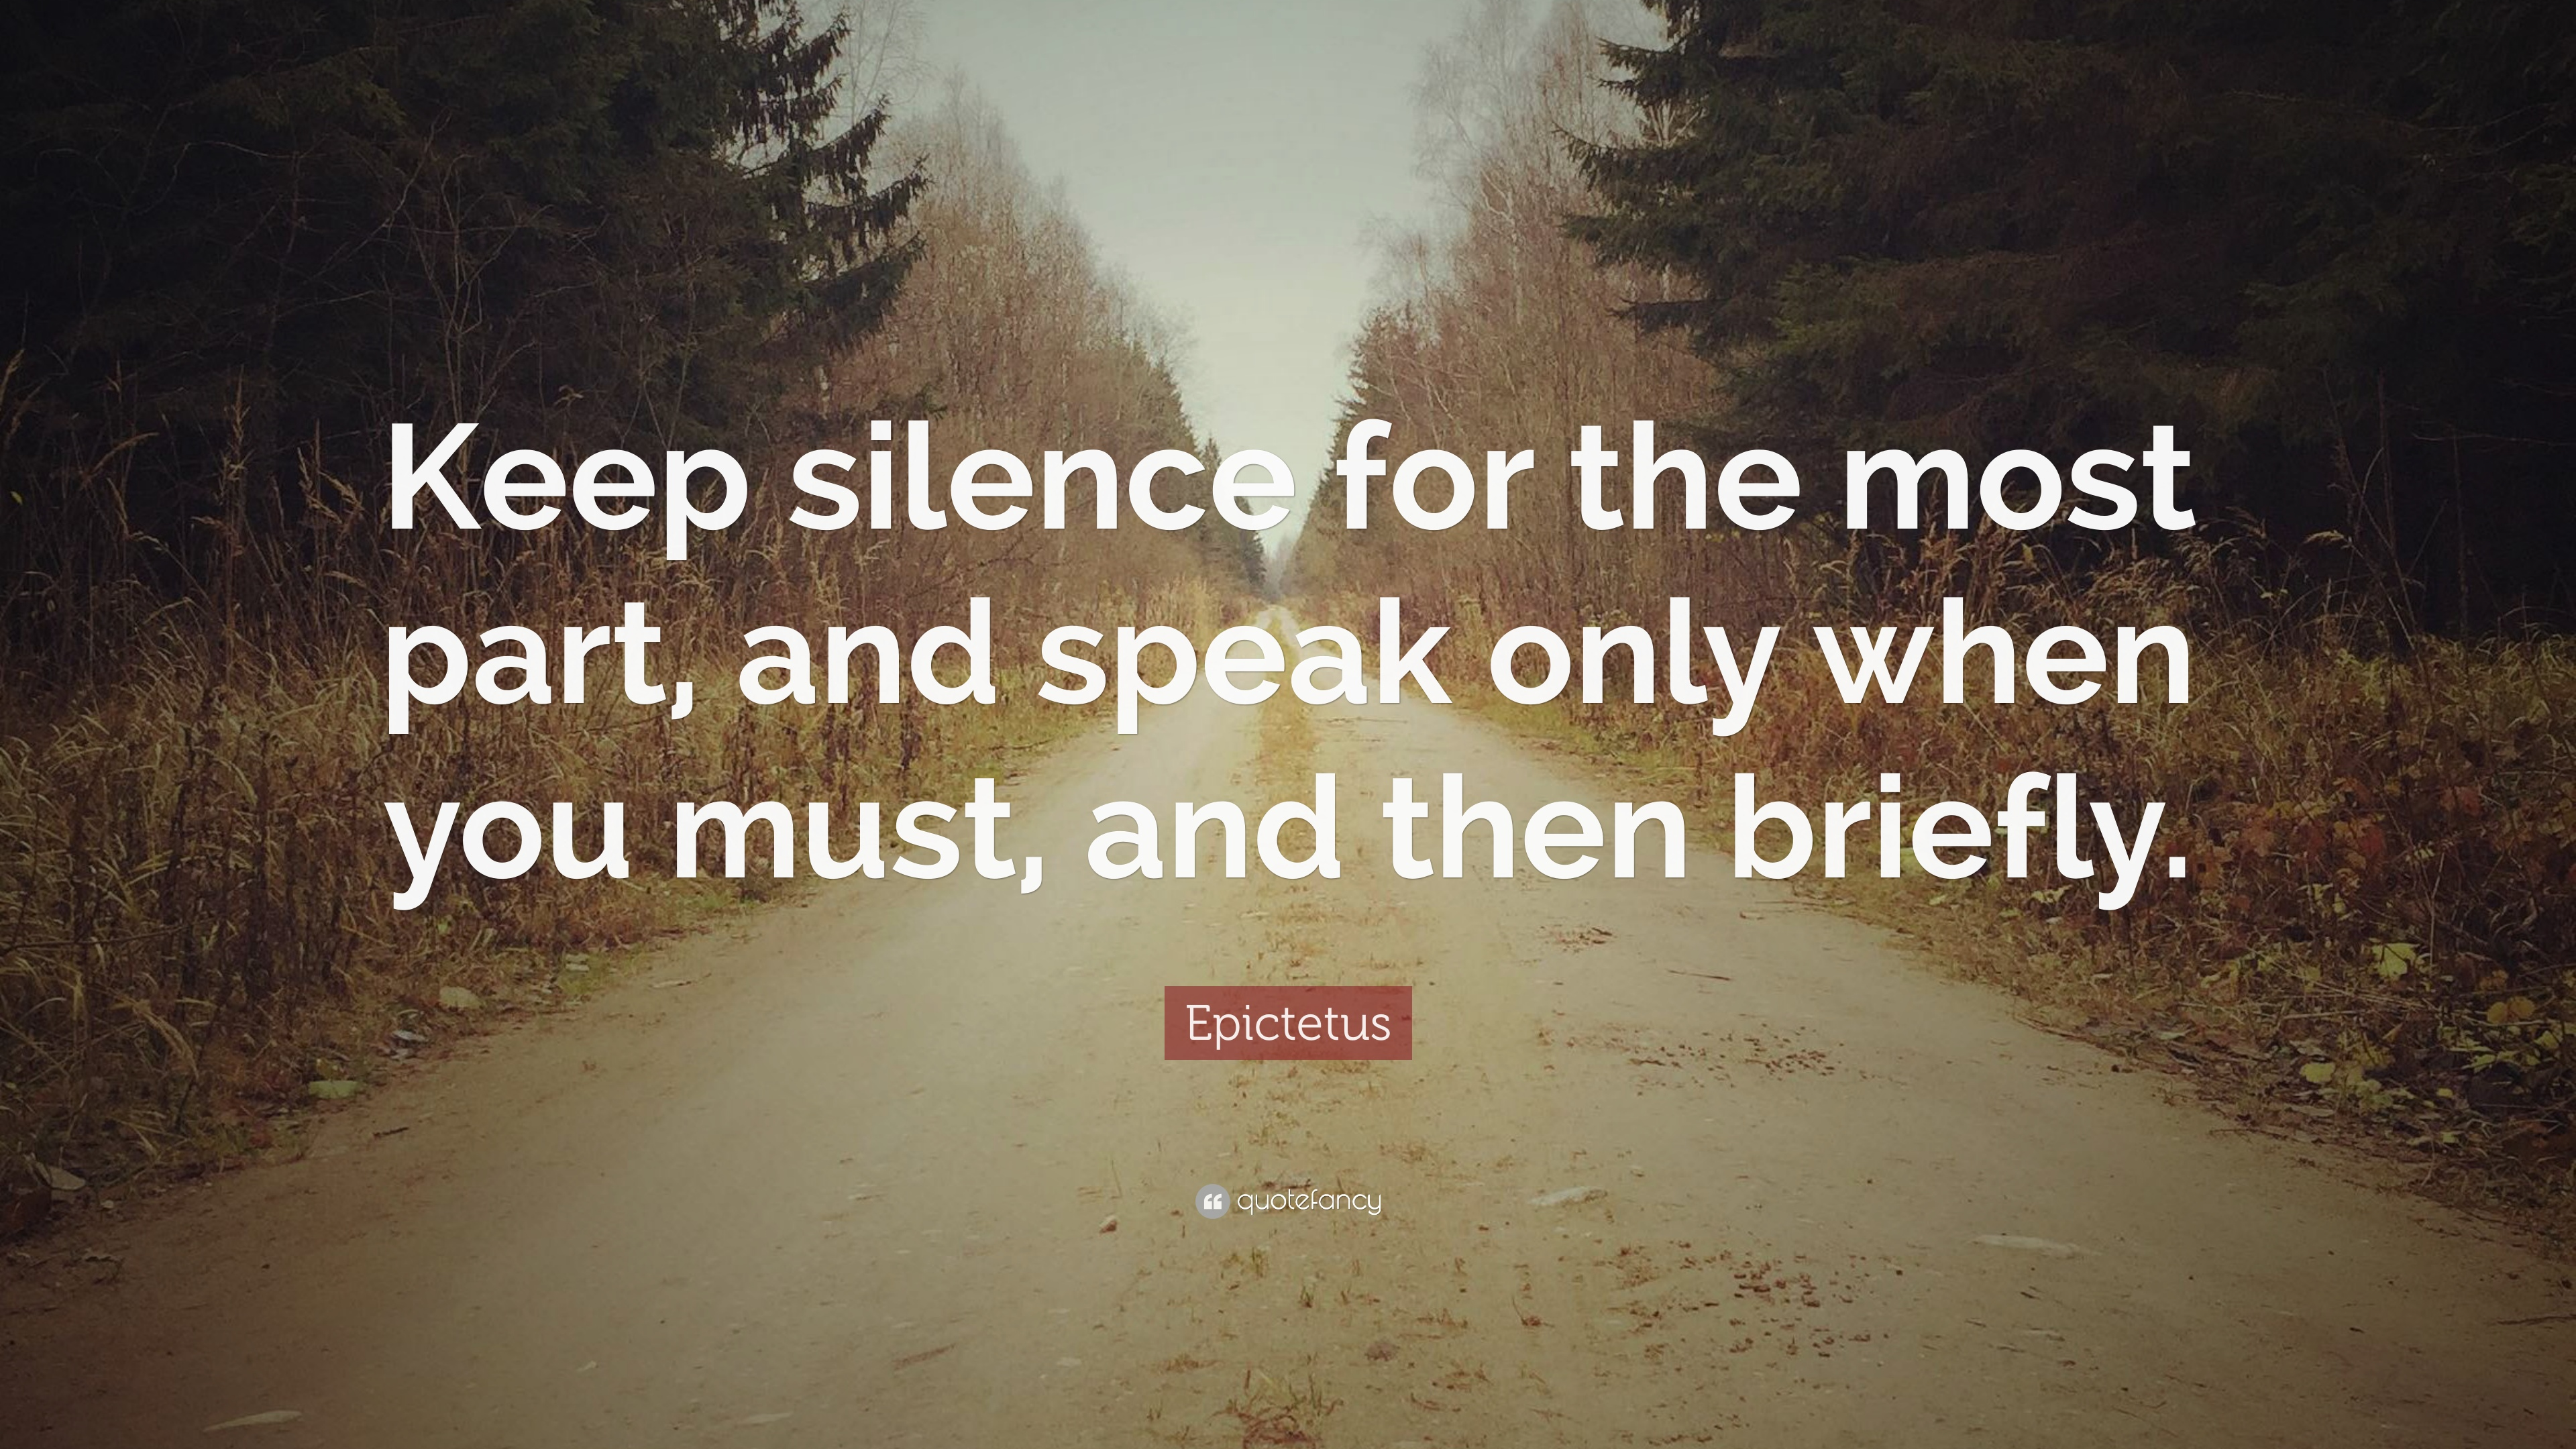 216411-Epictetus-Quote-Keep-silence-for-the-most-part-and-speak-only-when.jpg